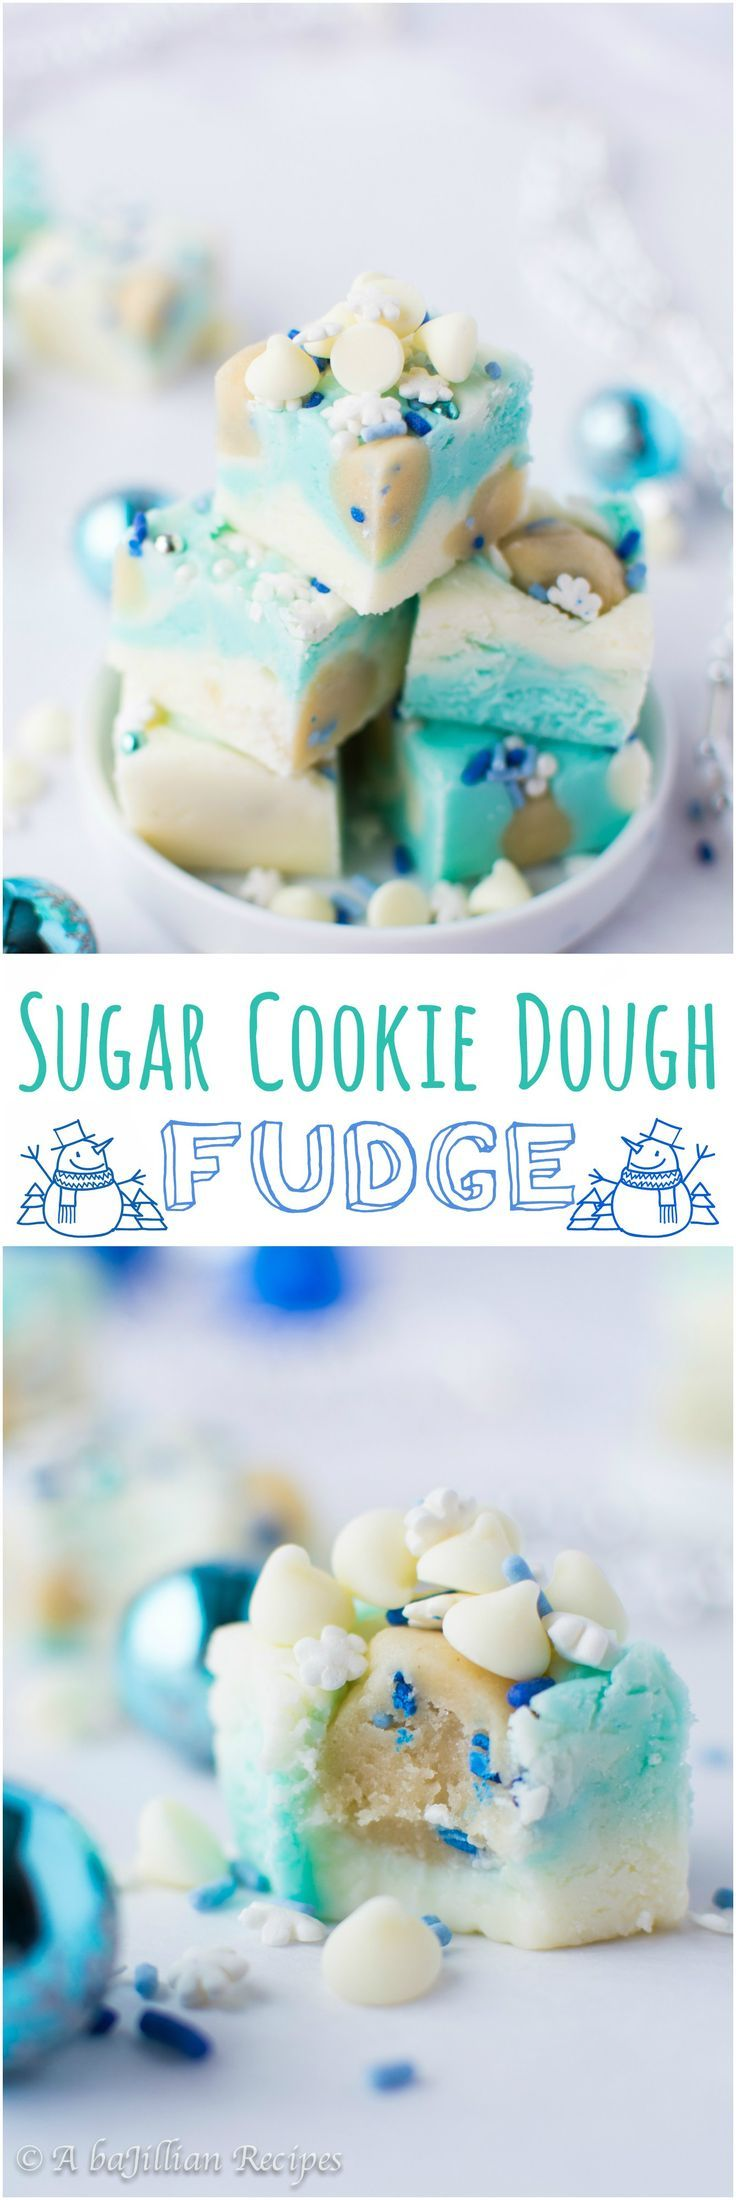 sugar-cookie-dough-fudge-A super easy, soft and creamy white chocolate fudge that's guaranteed to satisfy your raw cookie dough eating obsession! (Christmas Party Recipes)